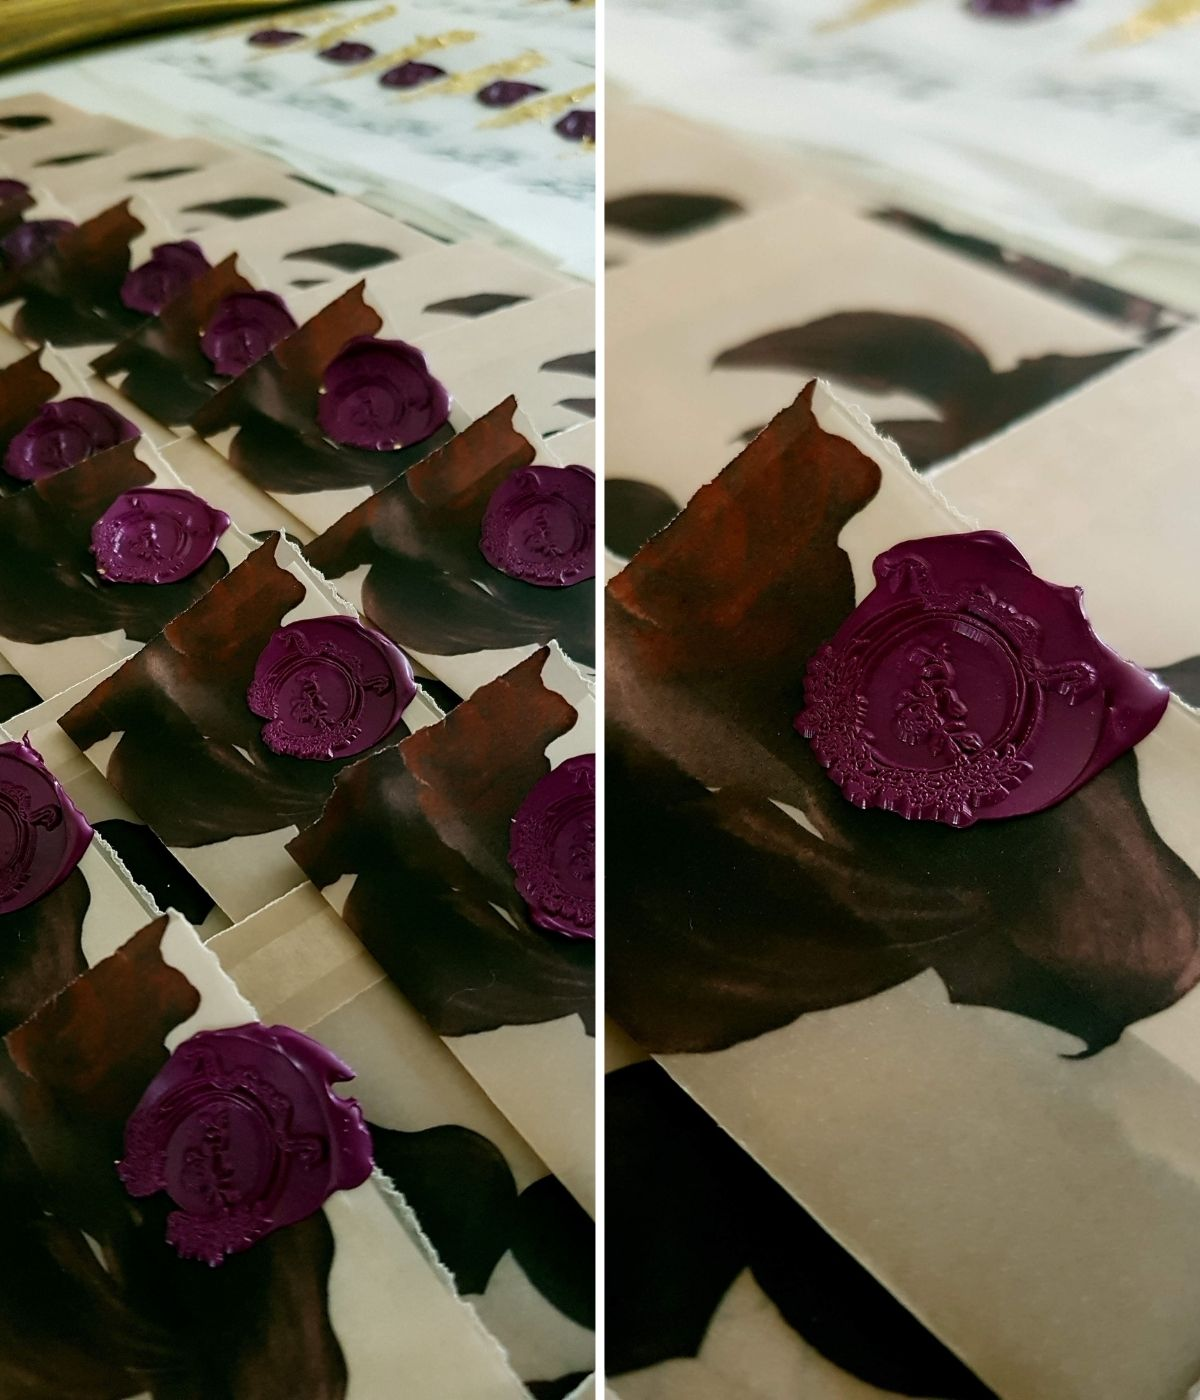 Wax sealed, custom made vellum envelopes with deep red and burgundy floral illustrations